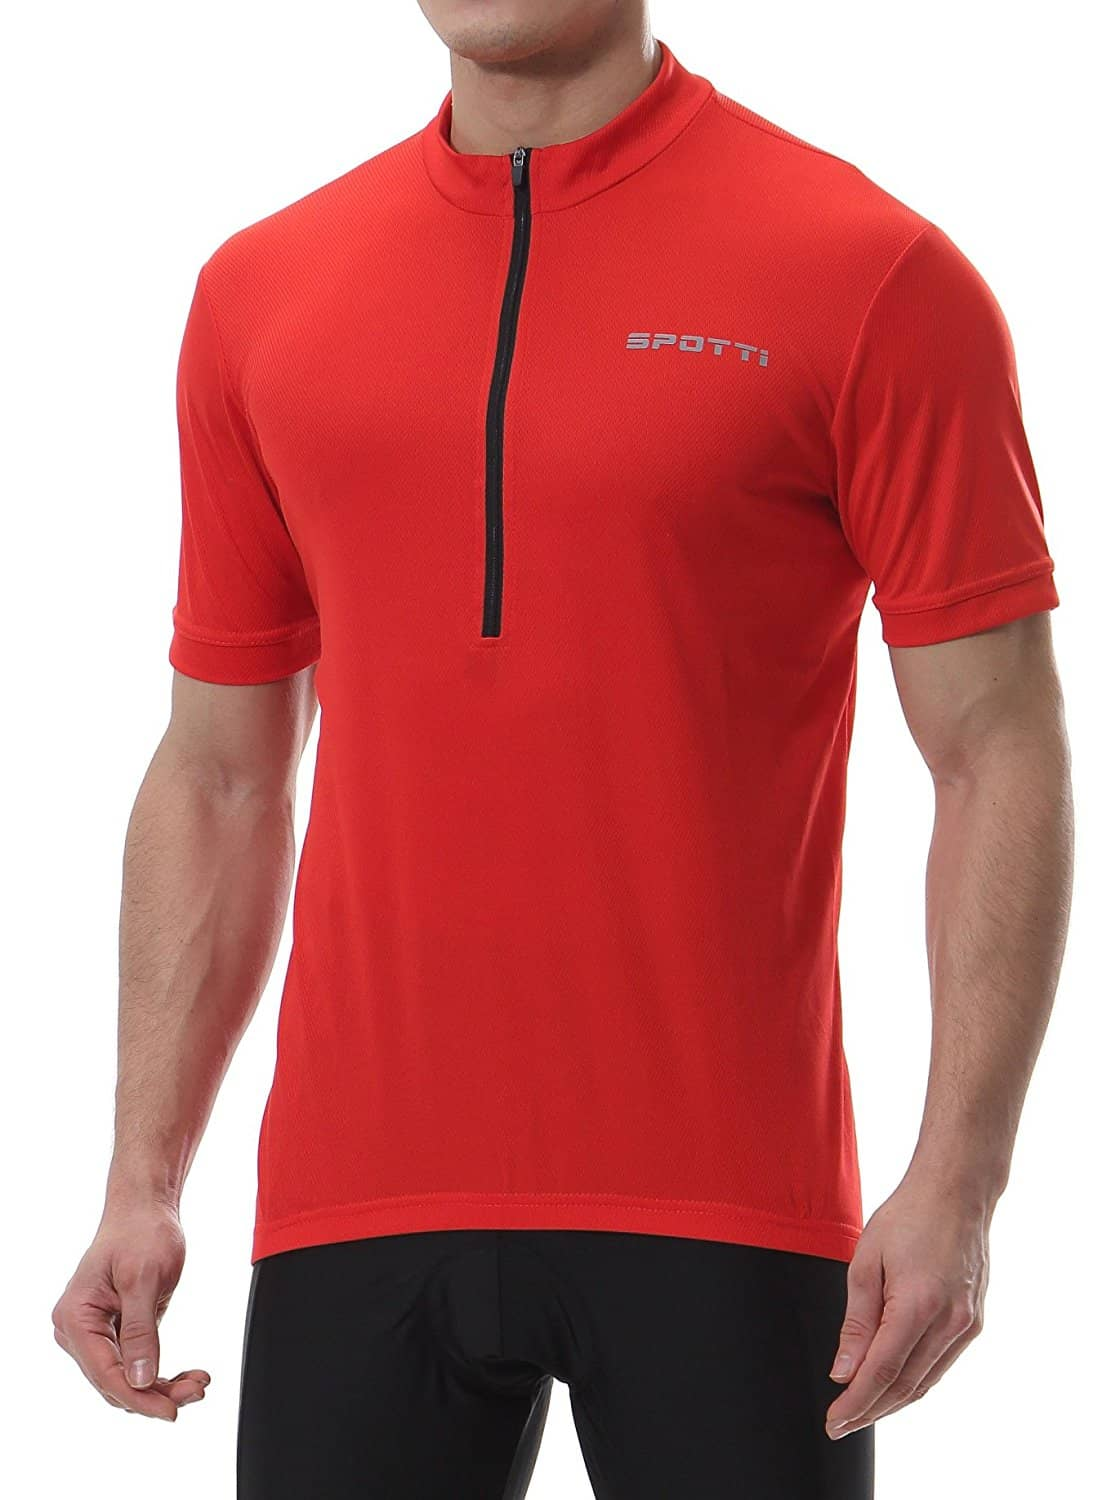 Best Cycling Jersey For Hot Weather